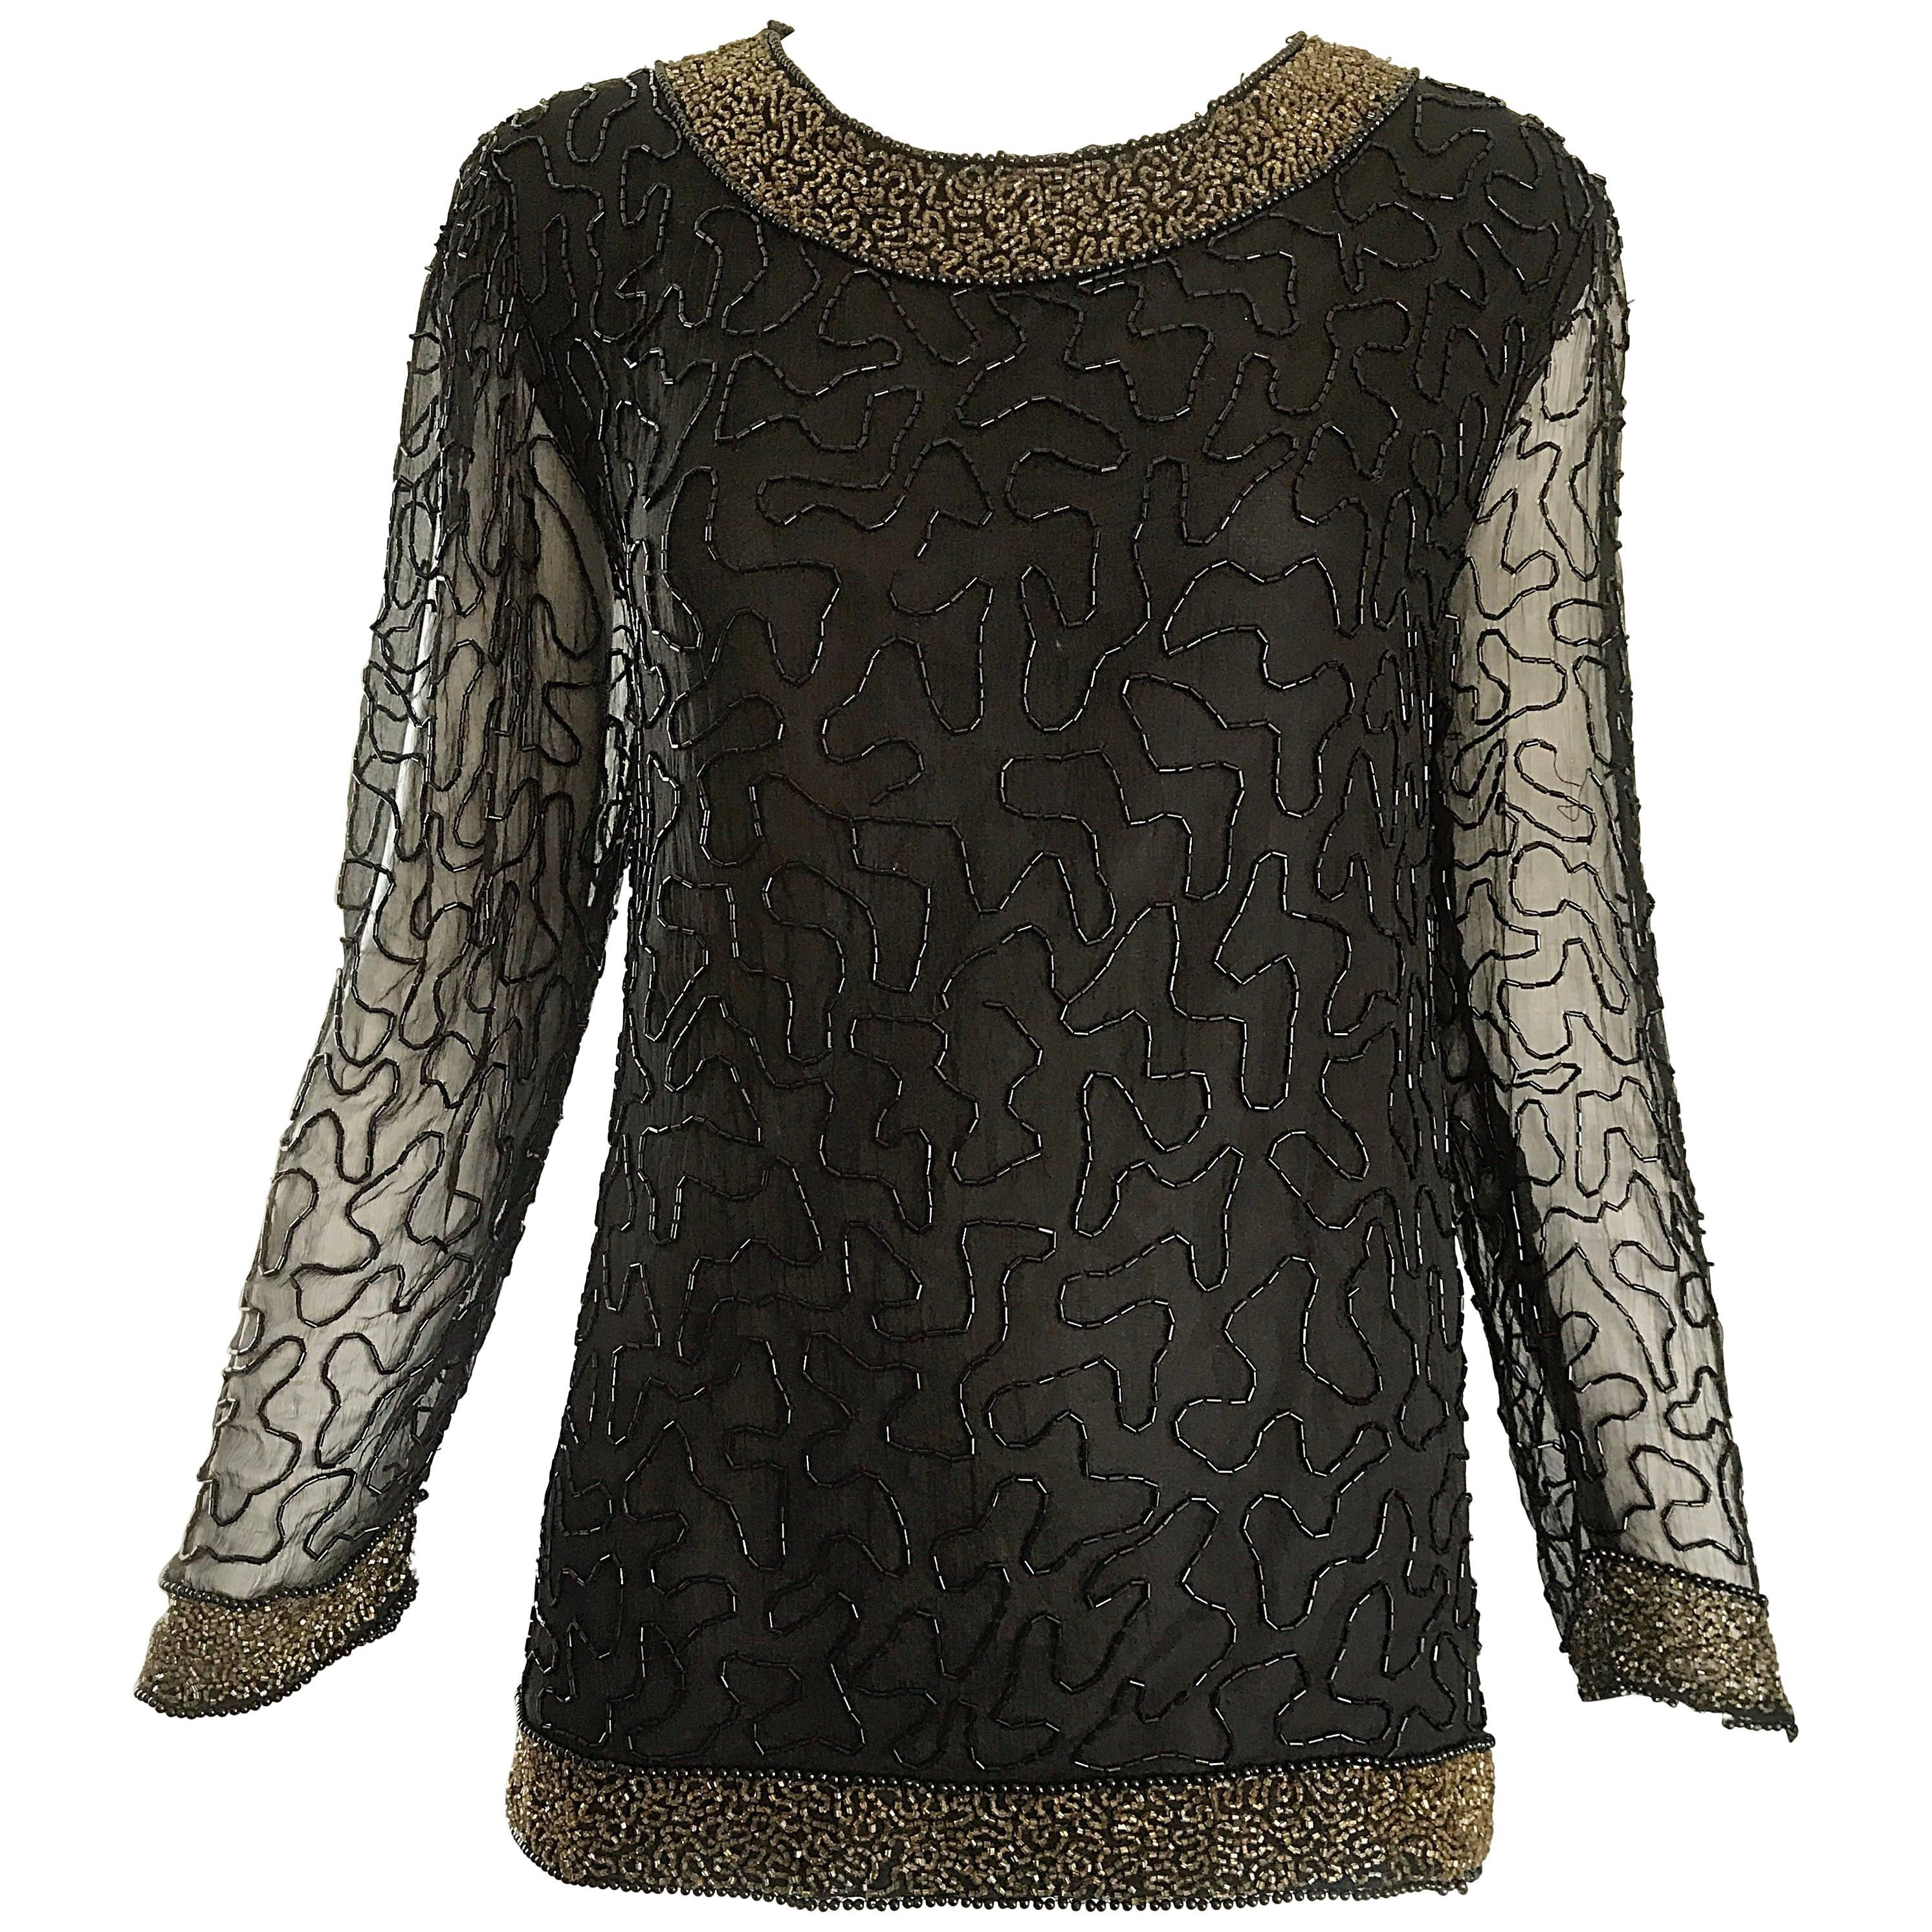 Stunning Swee Lo 1980s Black + Gold Silk Chiffon Beaded Vintage 80s Blouse Top